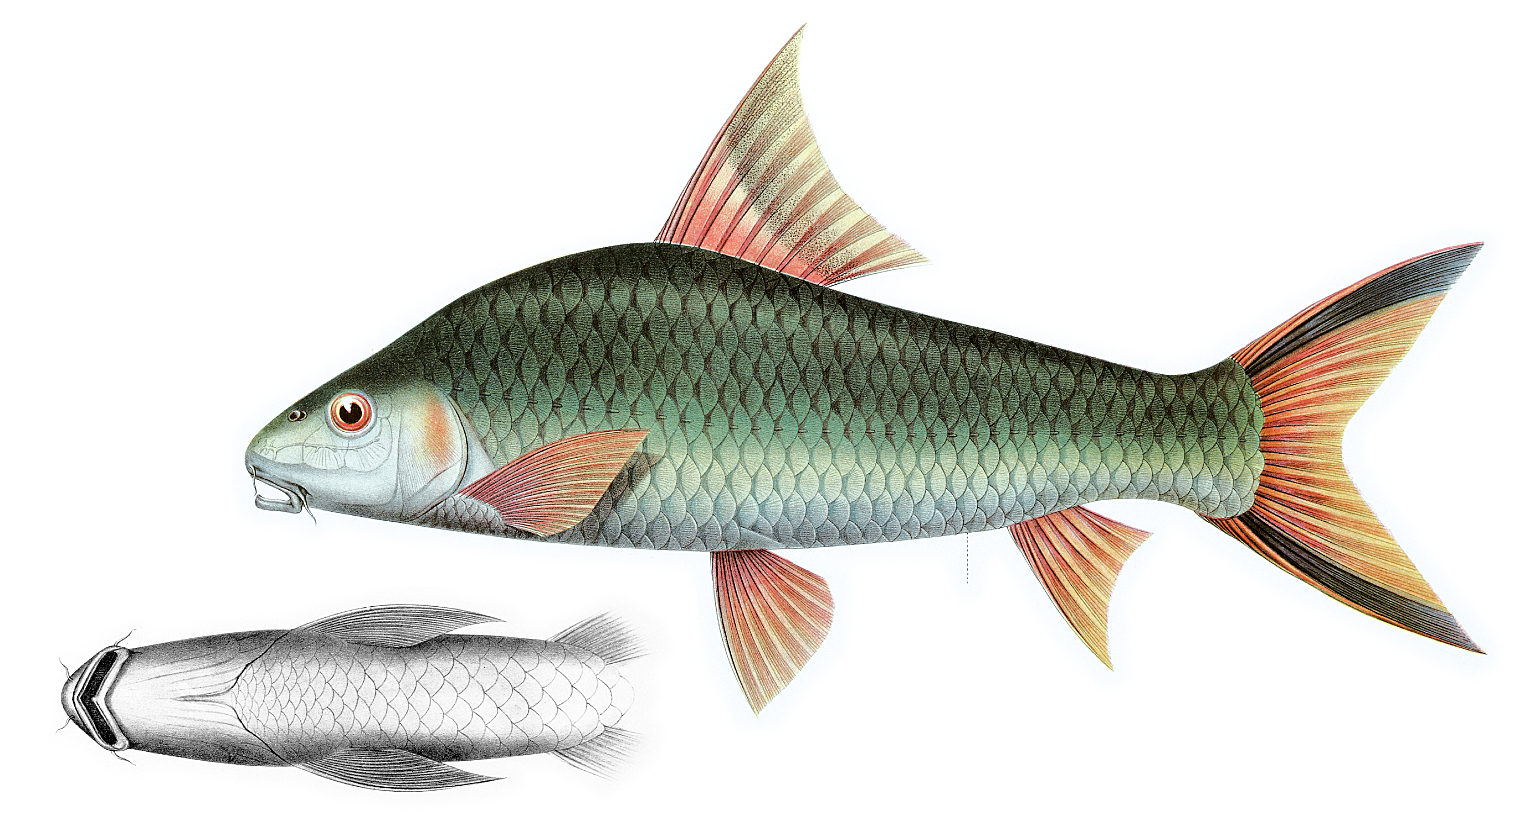 Image of Sucker Barb